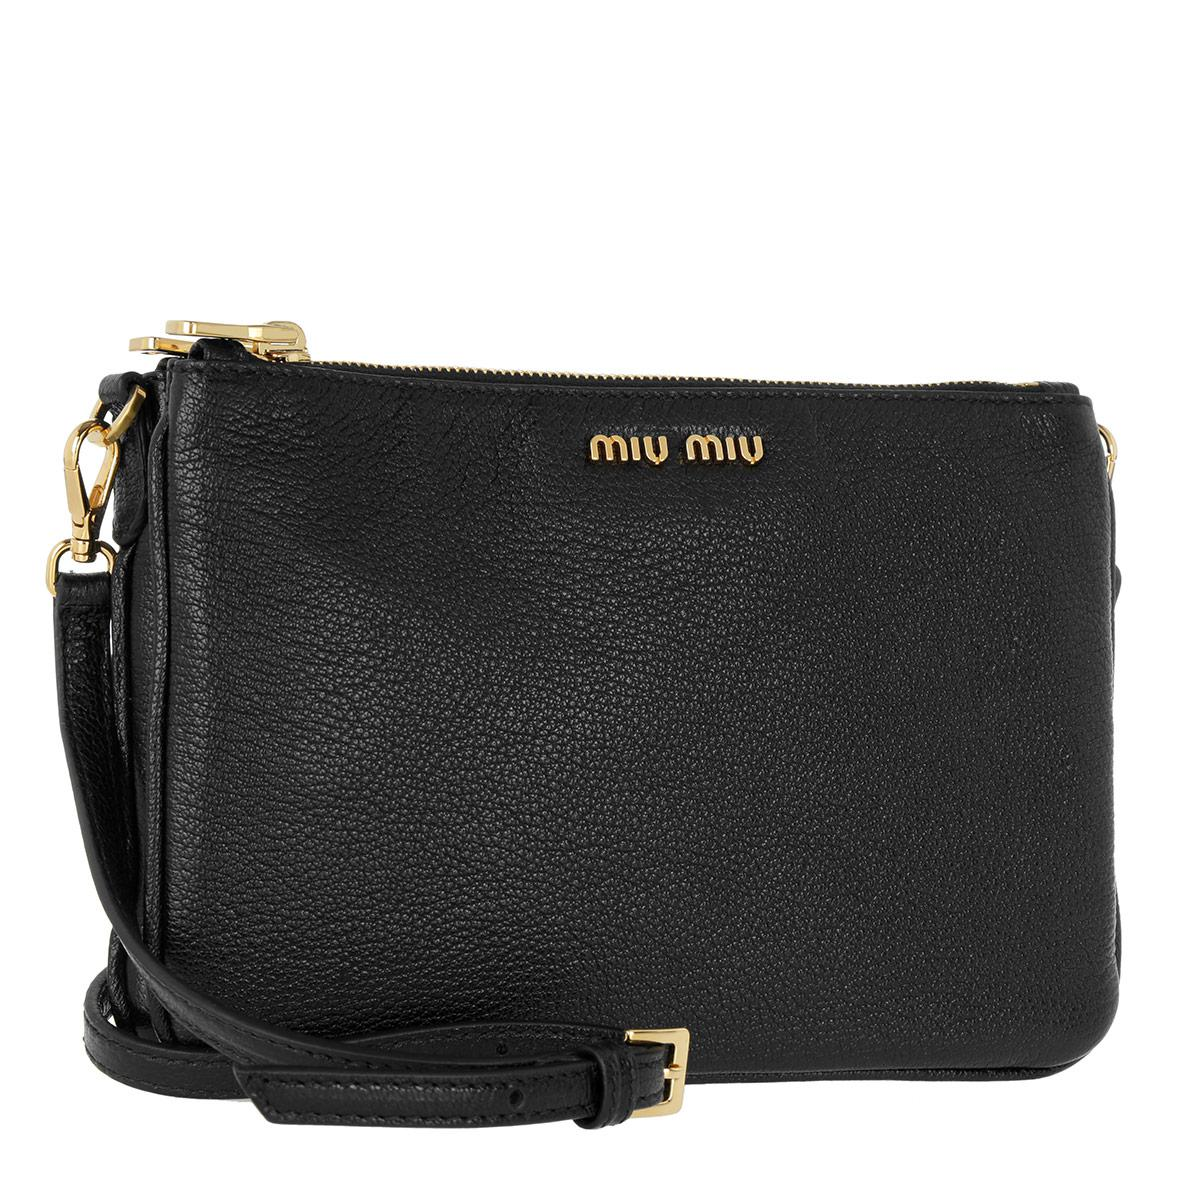 1c8a58d2e1a6 Gallery. Previously sold at  Fashionette · Women s Miu Miu Shoulder Bag ...